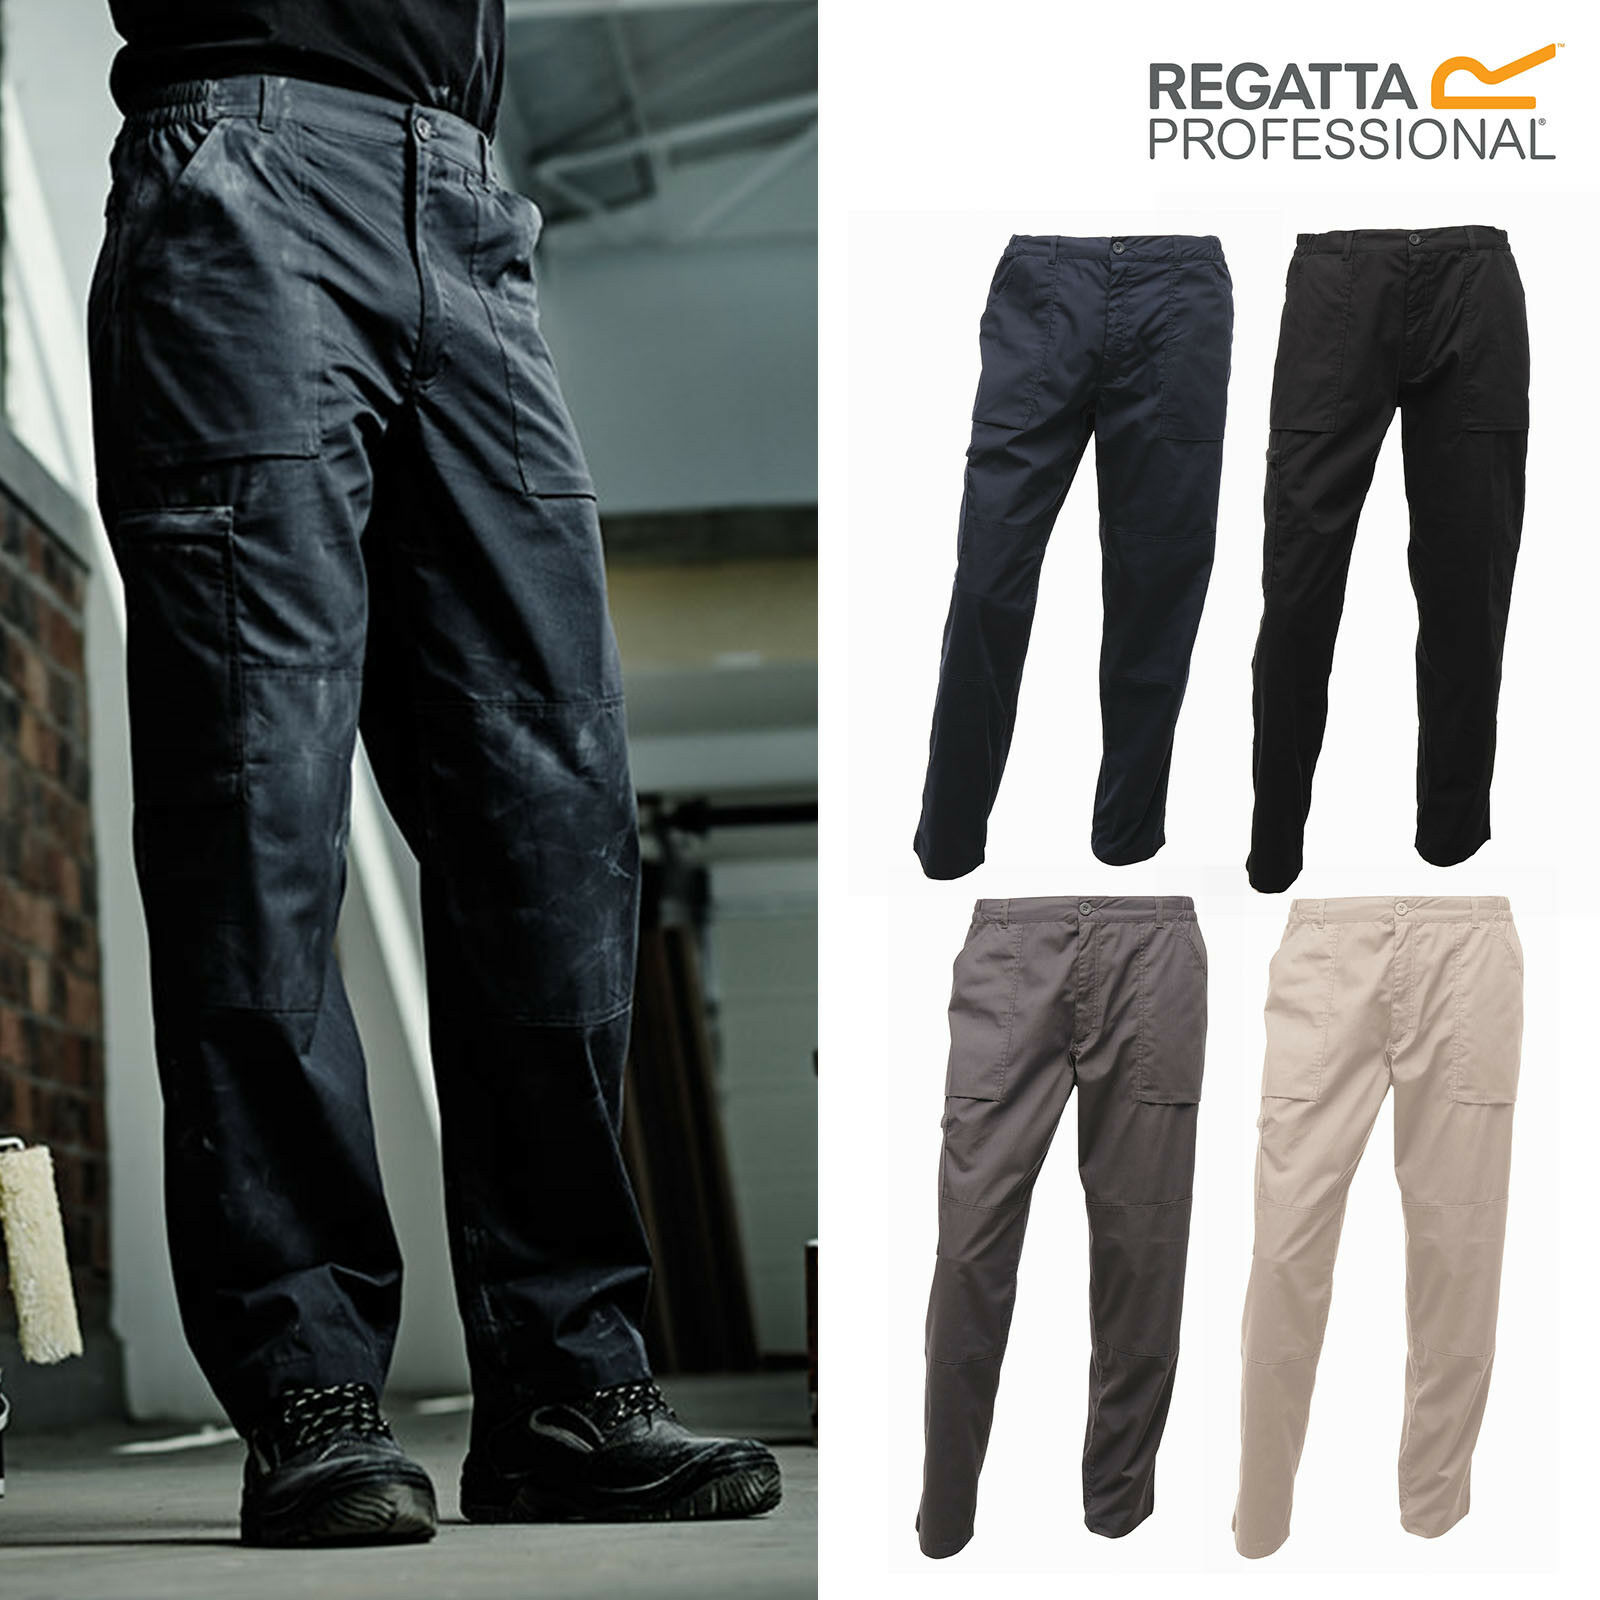 Regatta Professional New Action Trousers TRJ330